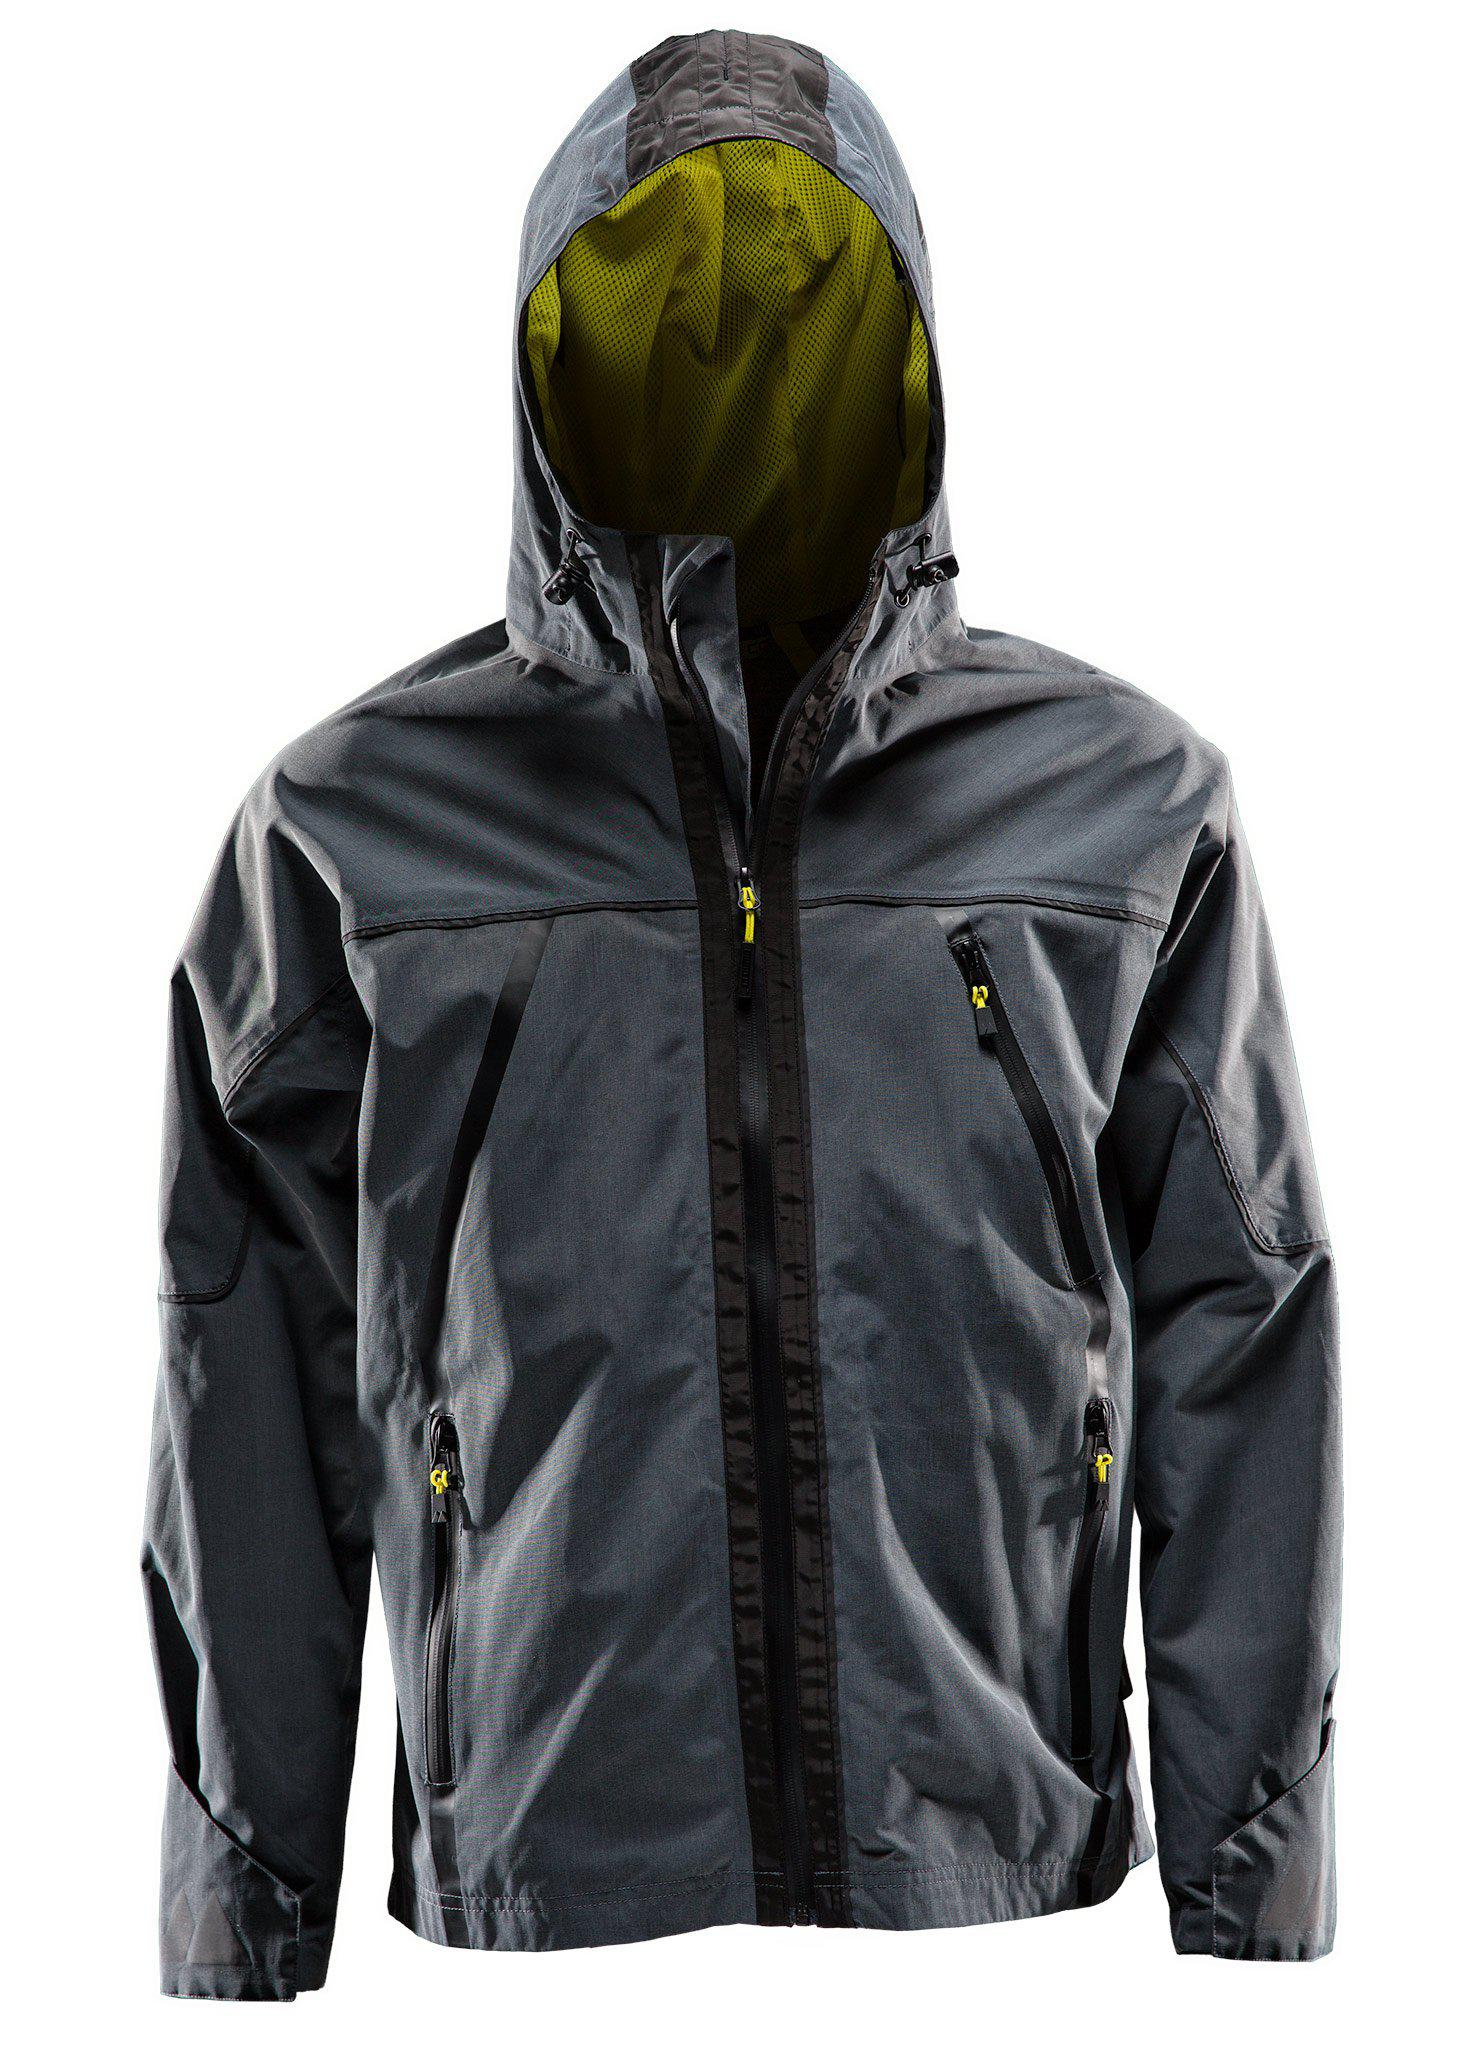 Shell jacket, Wind jacket, Anthracite grey, L